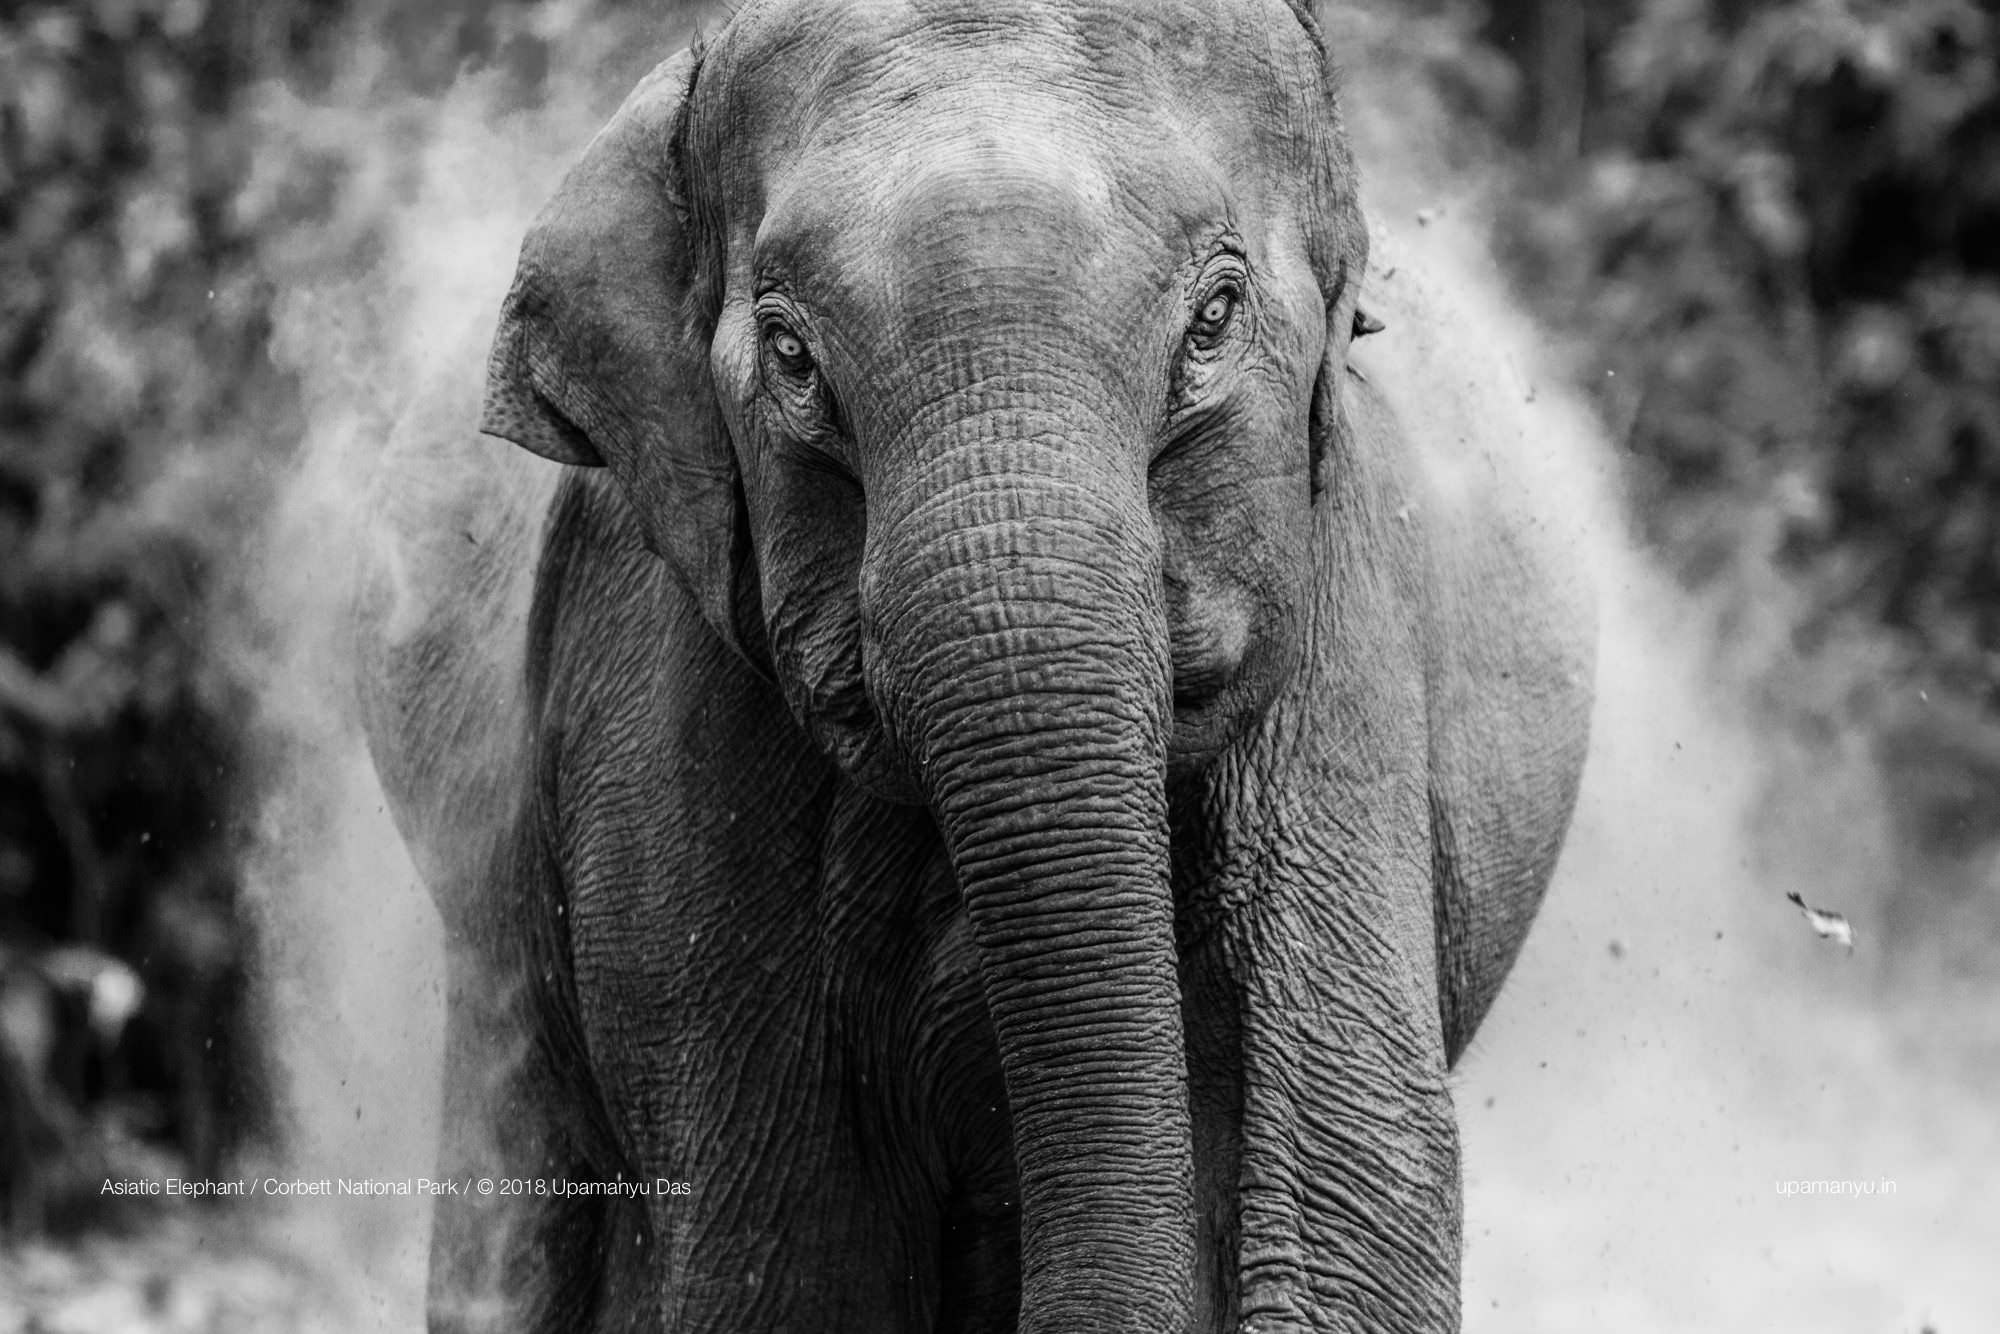 Asiatic Elephant (Corbett)